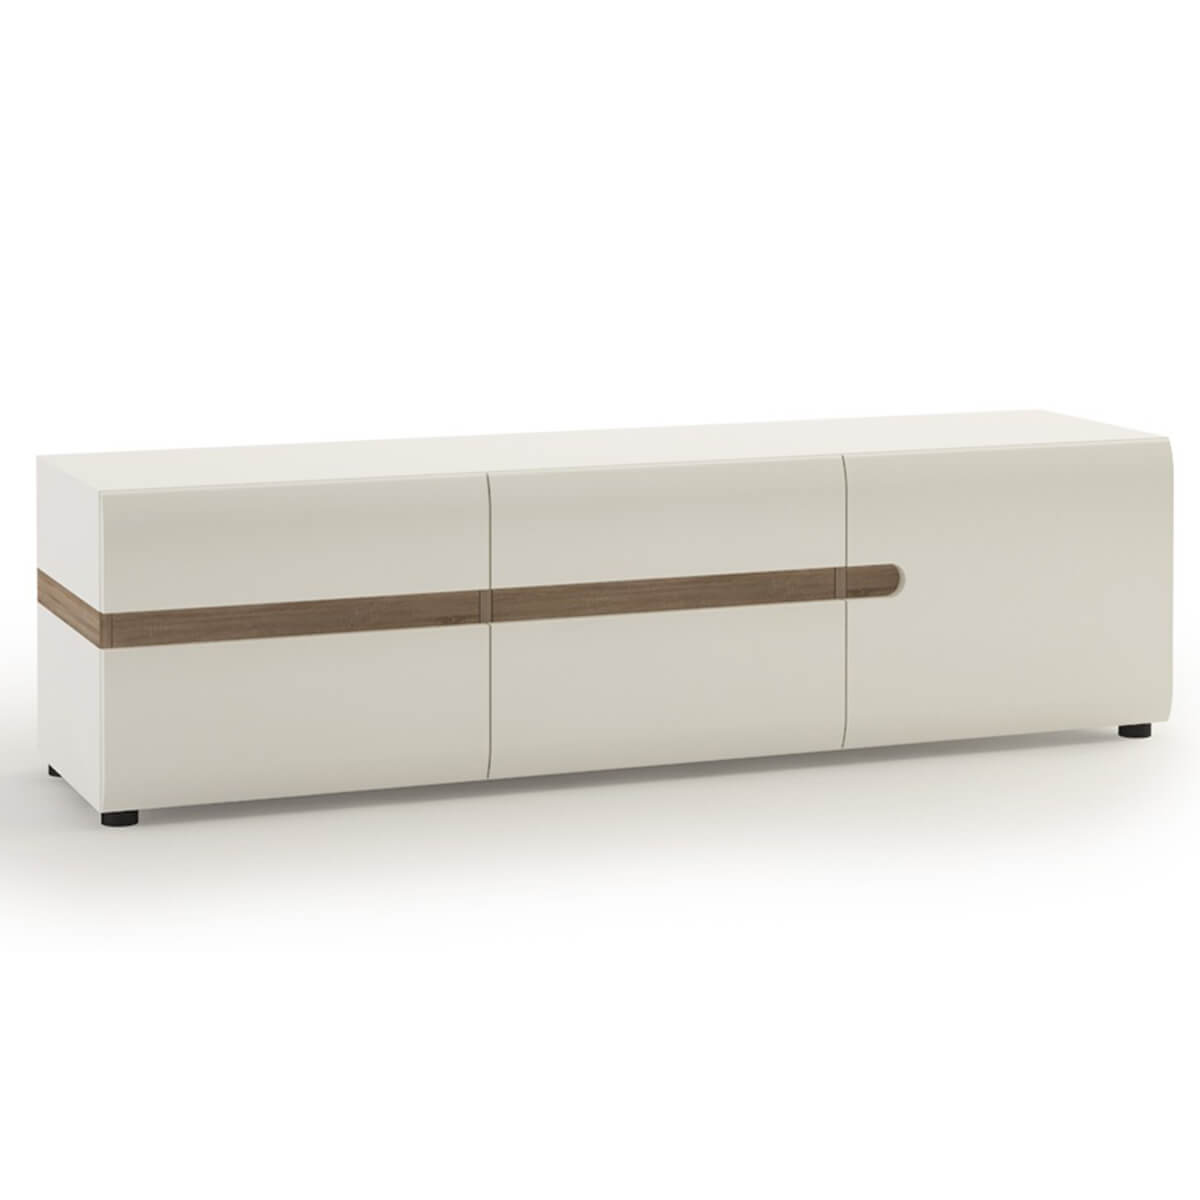 Mode Storage TV Unit 164cm White Gloss & Truffle Oak